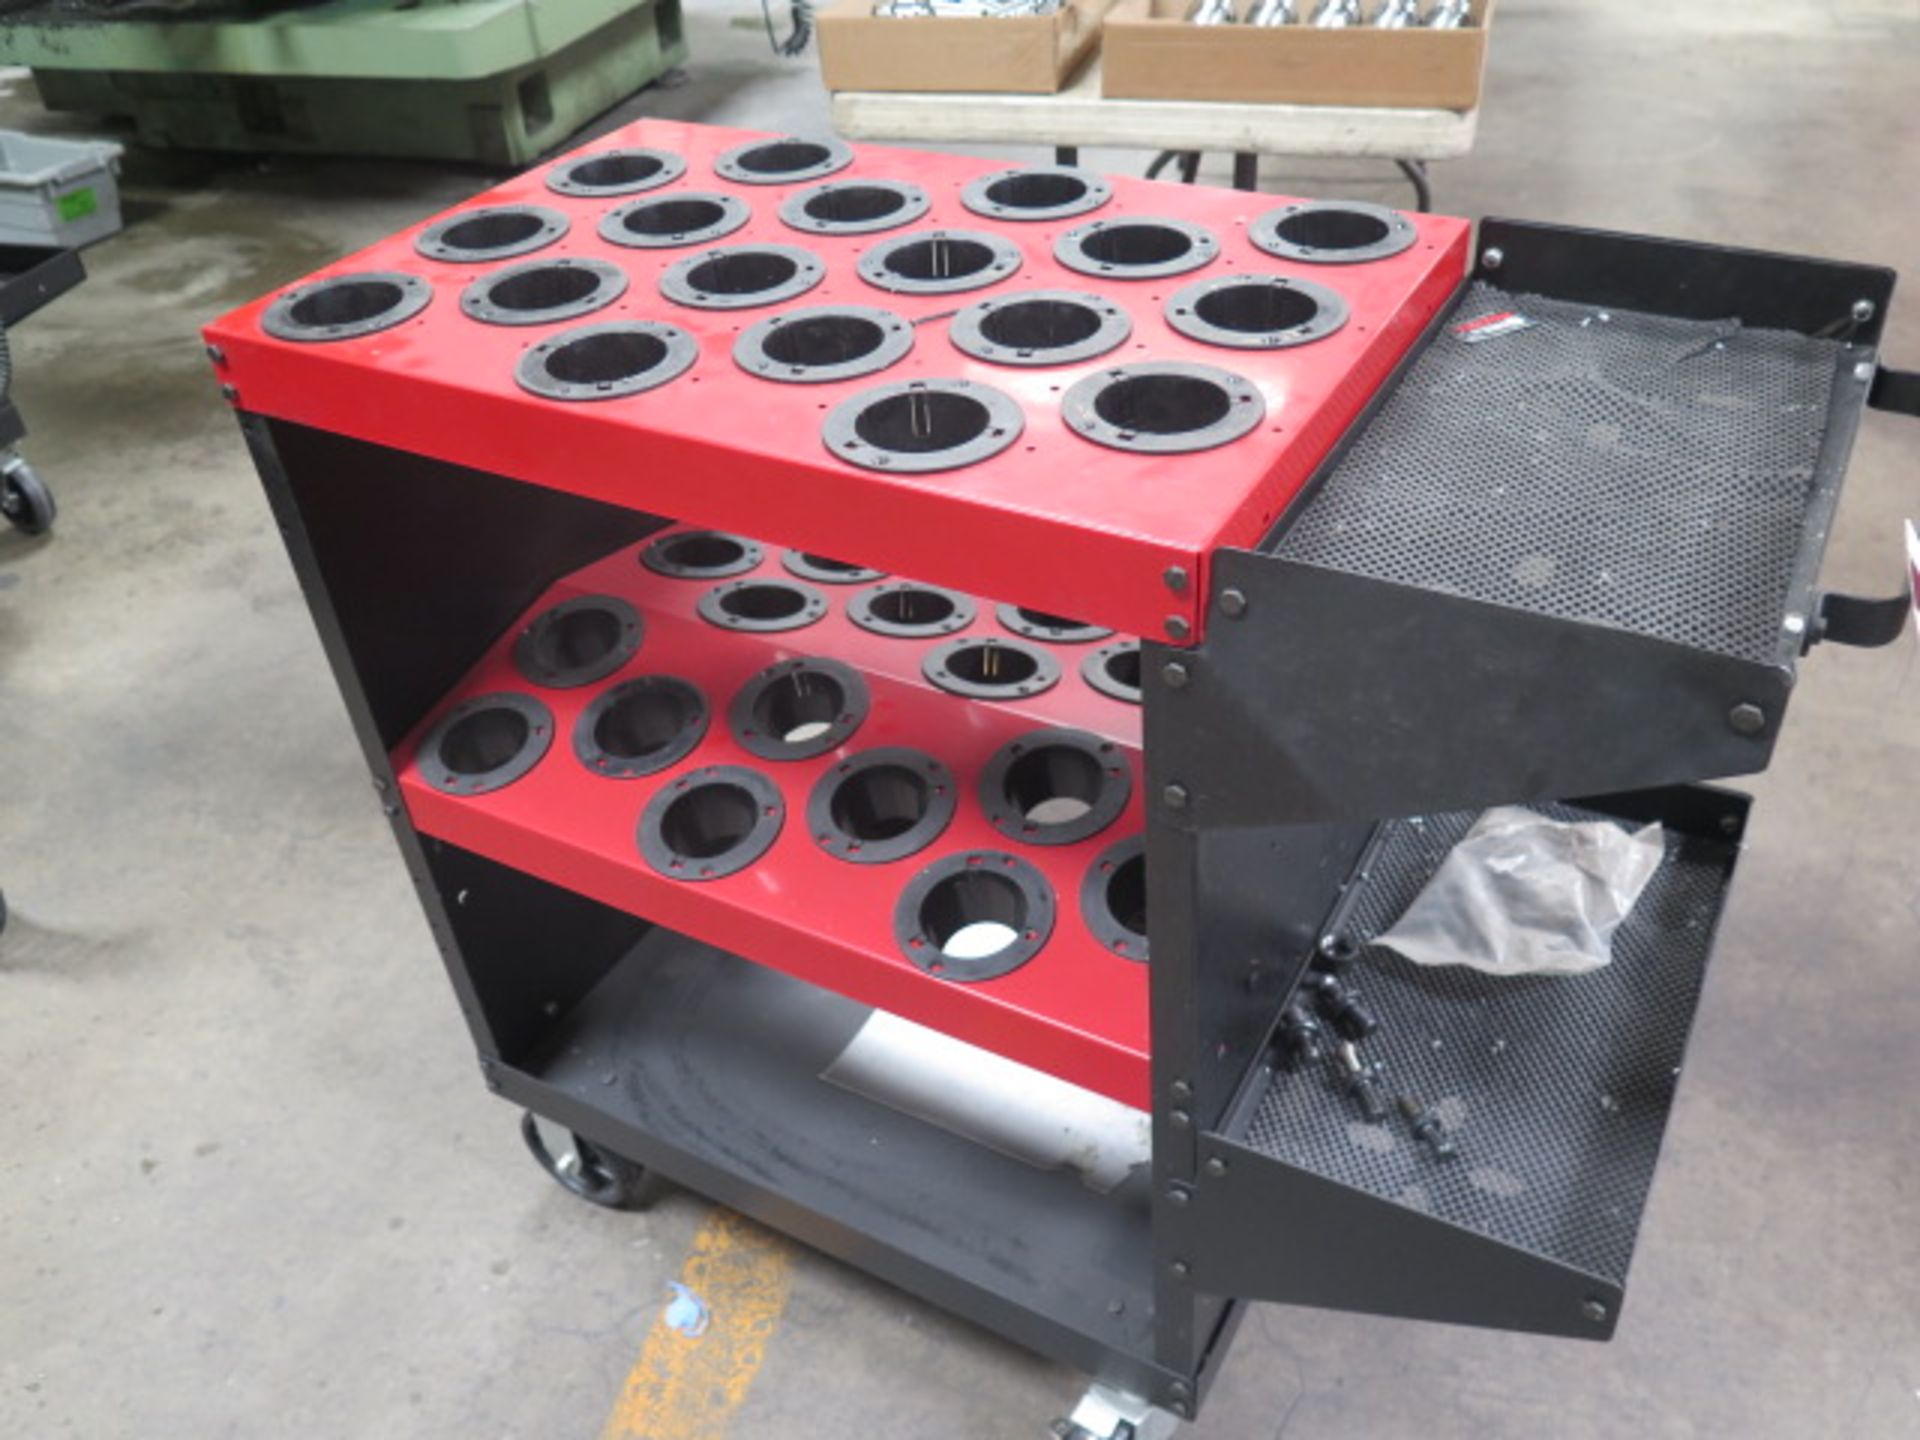 Huot Toolscoot 50-Taper Tooling Cart (SOLD AS-IS - NO WARRANTY) - Image 2 of 5